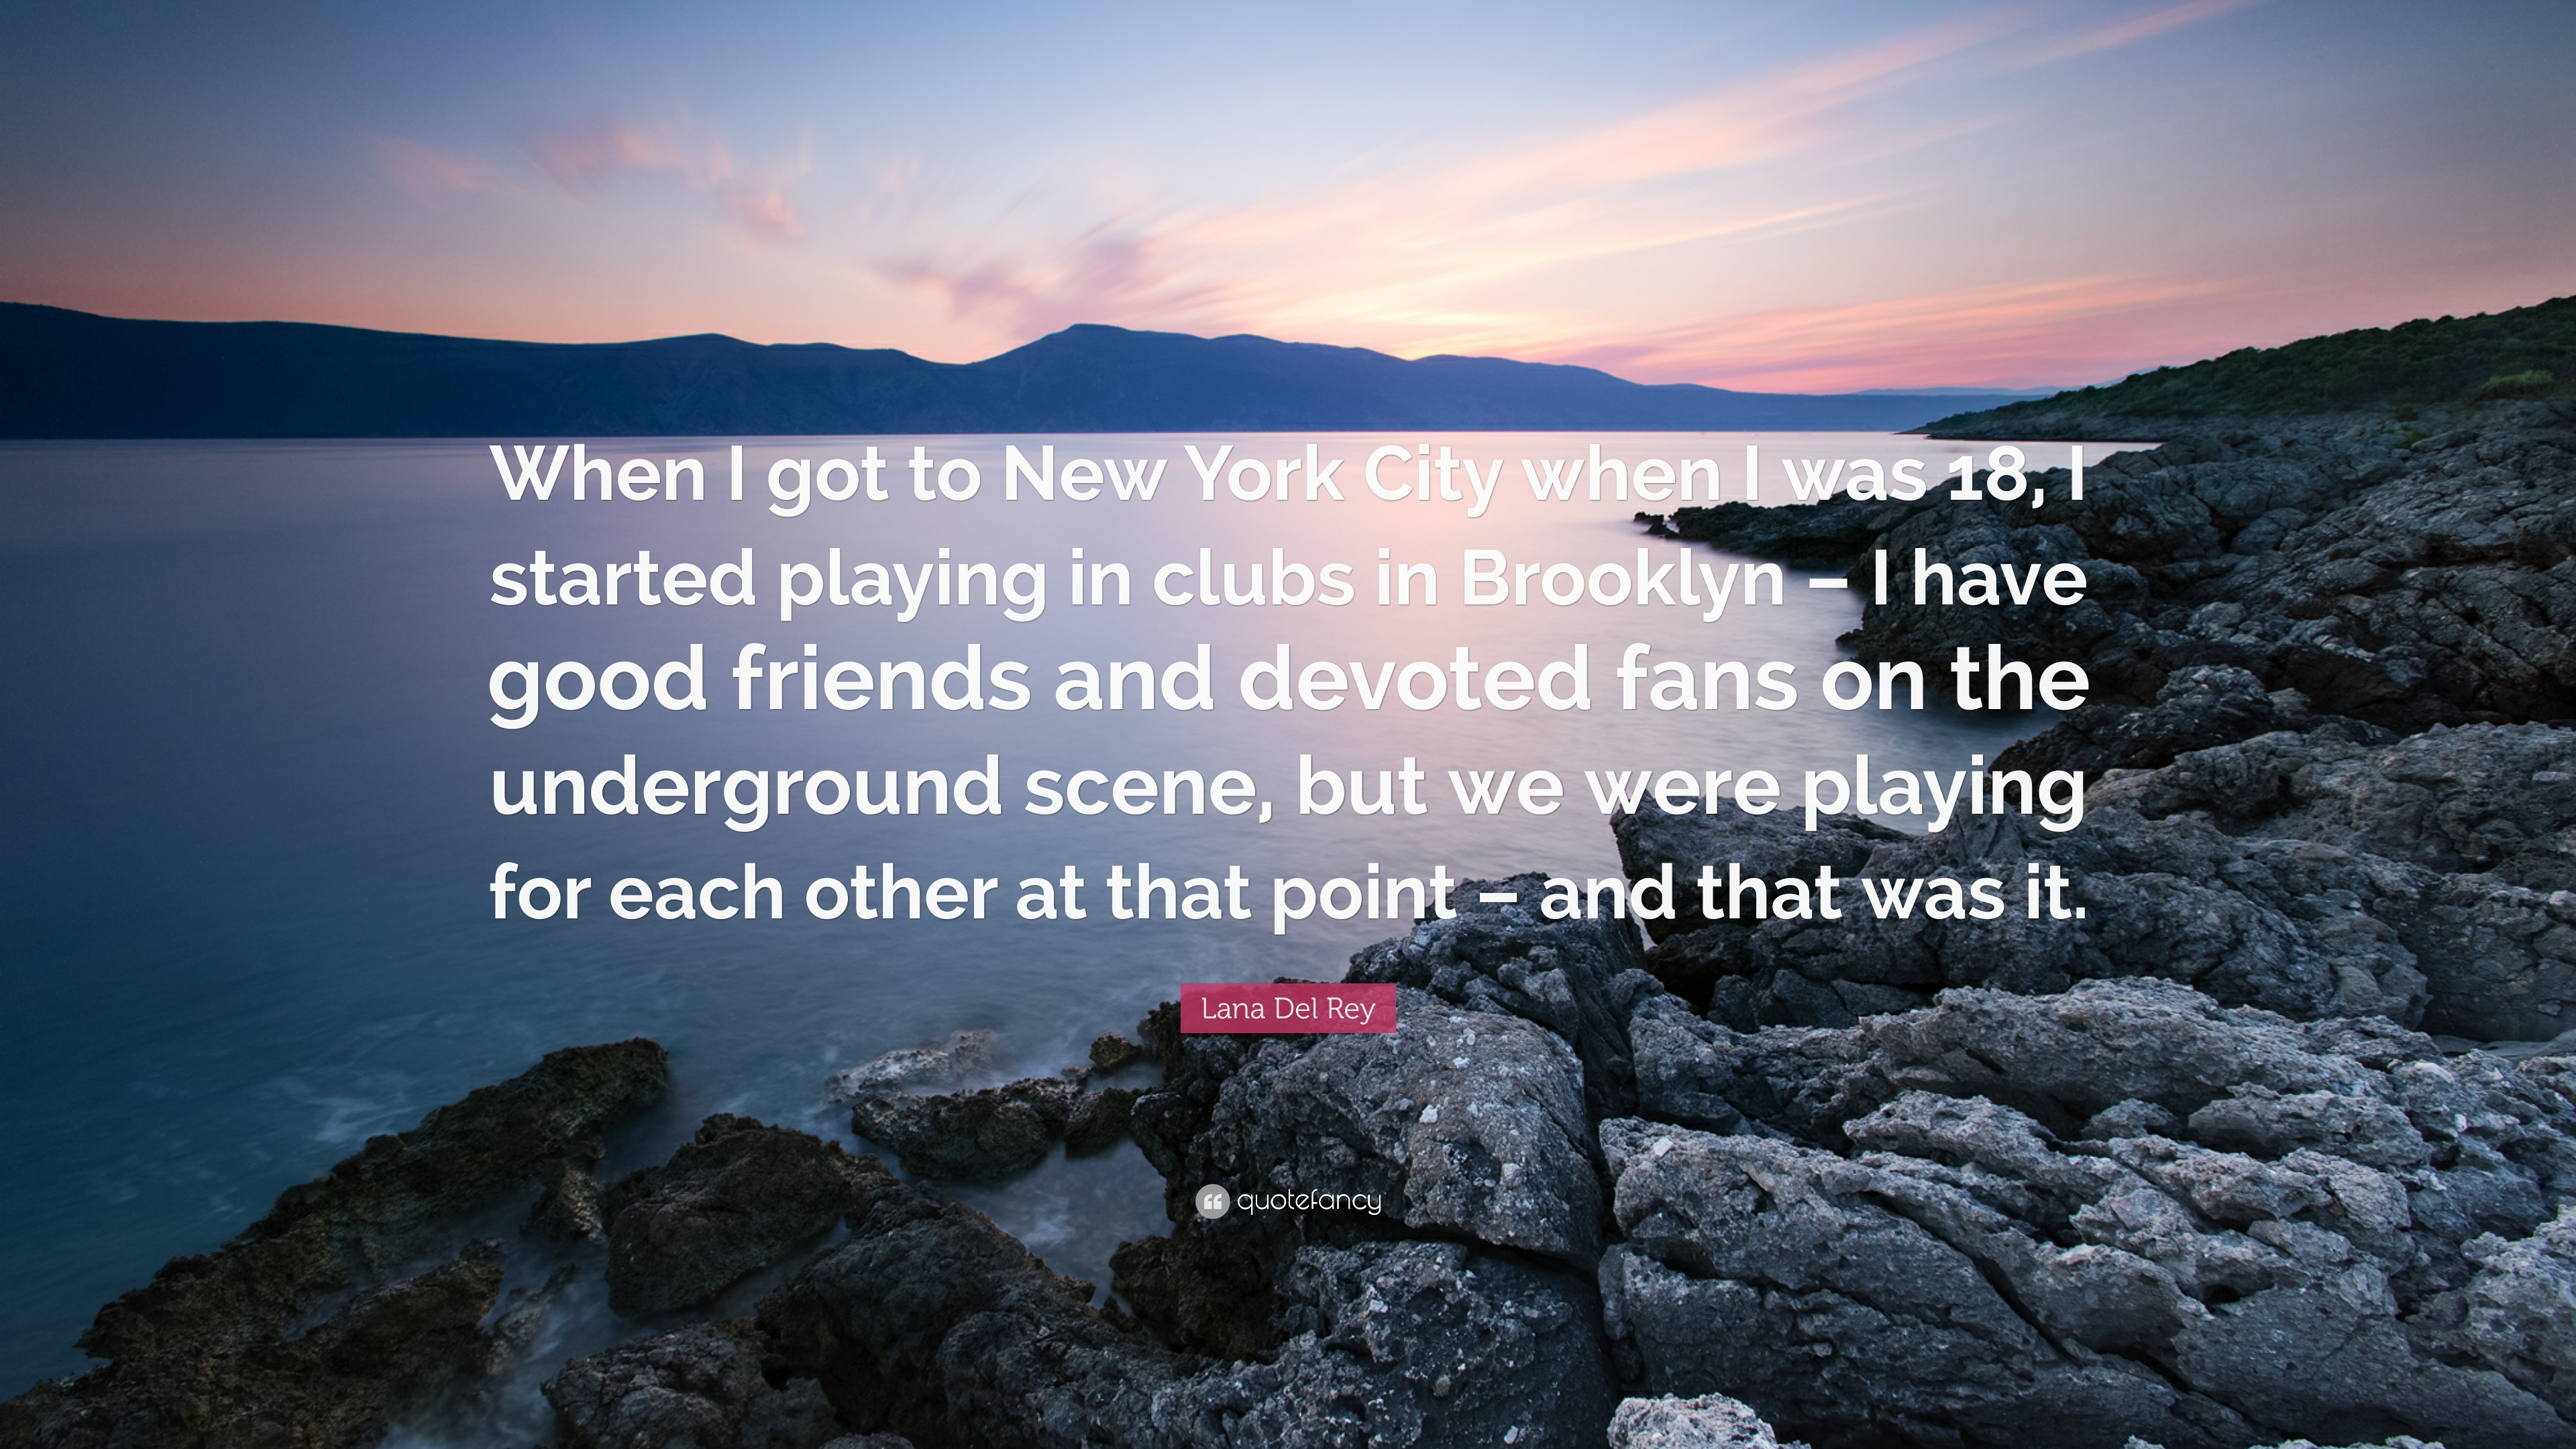 Quotes About New York 40 Wallpapers Quotefancy